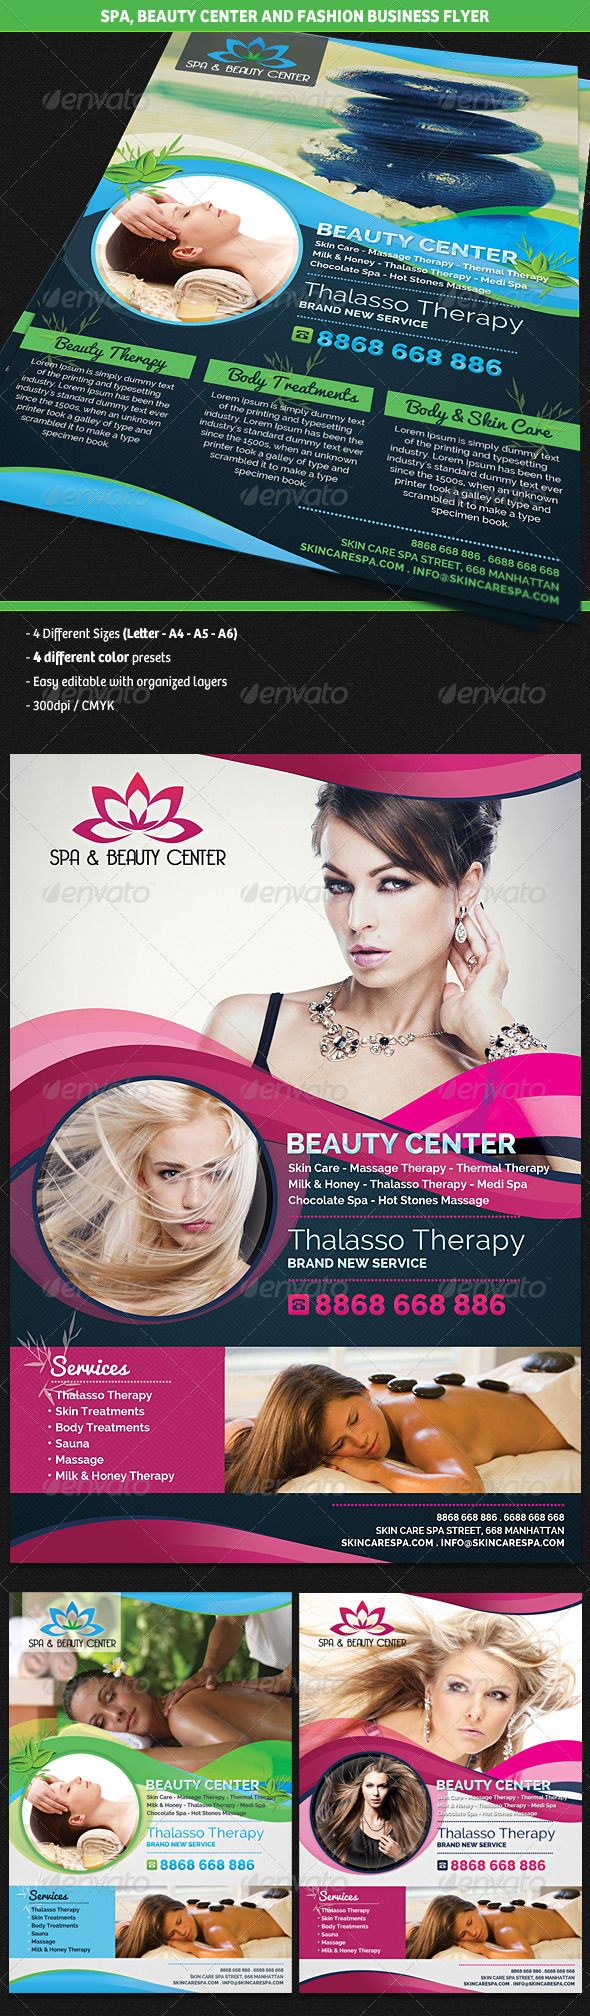 Spa & Beauty Fashion Center Business Flyer #GraphicRiver Description A professional, modern and eye catching business flyer perfect for any Spa, Beauty Fashion Center, Hairdresser or Hair Stylist consultancy activity. Content – 4 different sizes included: US Letter / A4 / A5 / A6 – 4 Different color presets included – 300dpi / CMYK included – Layered and easy editable Fonts Raleway Pacifico Created: 24June13 GraphicsFilesIncluded: PhotoshopPSD Layered